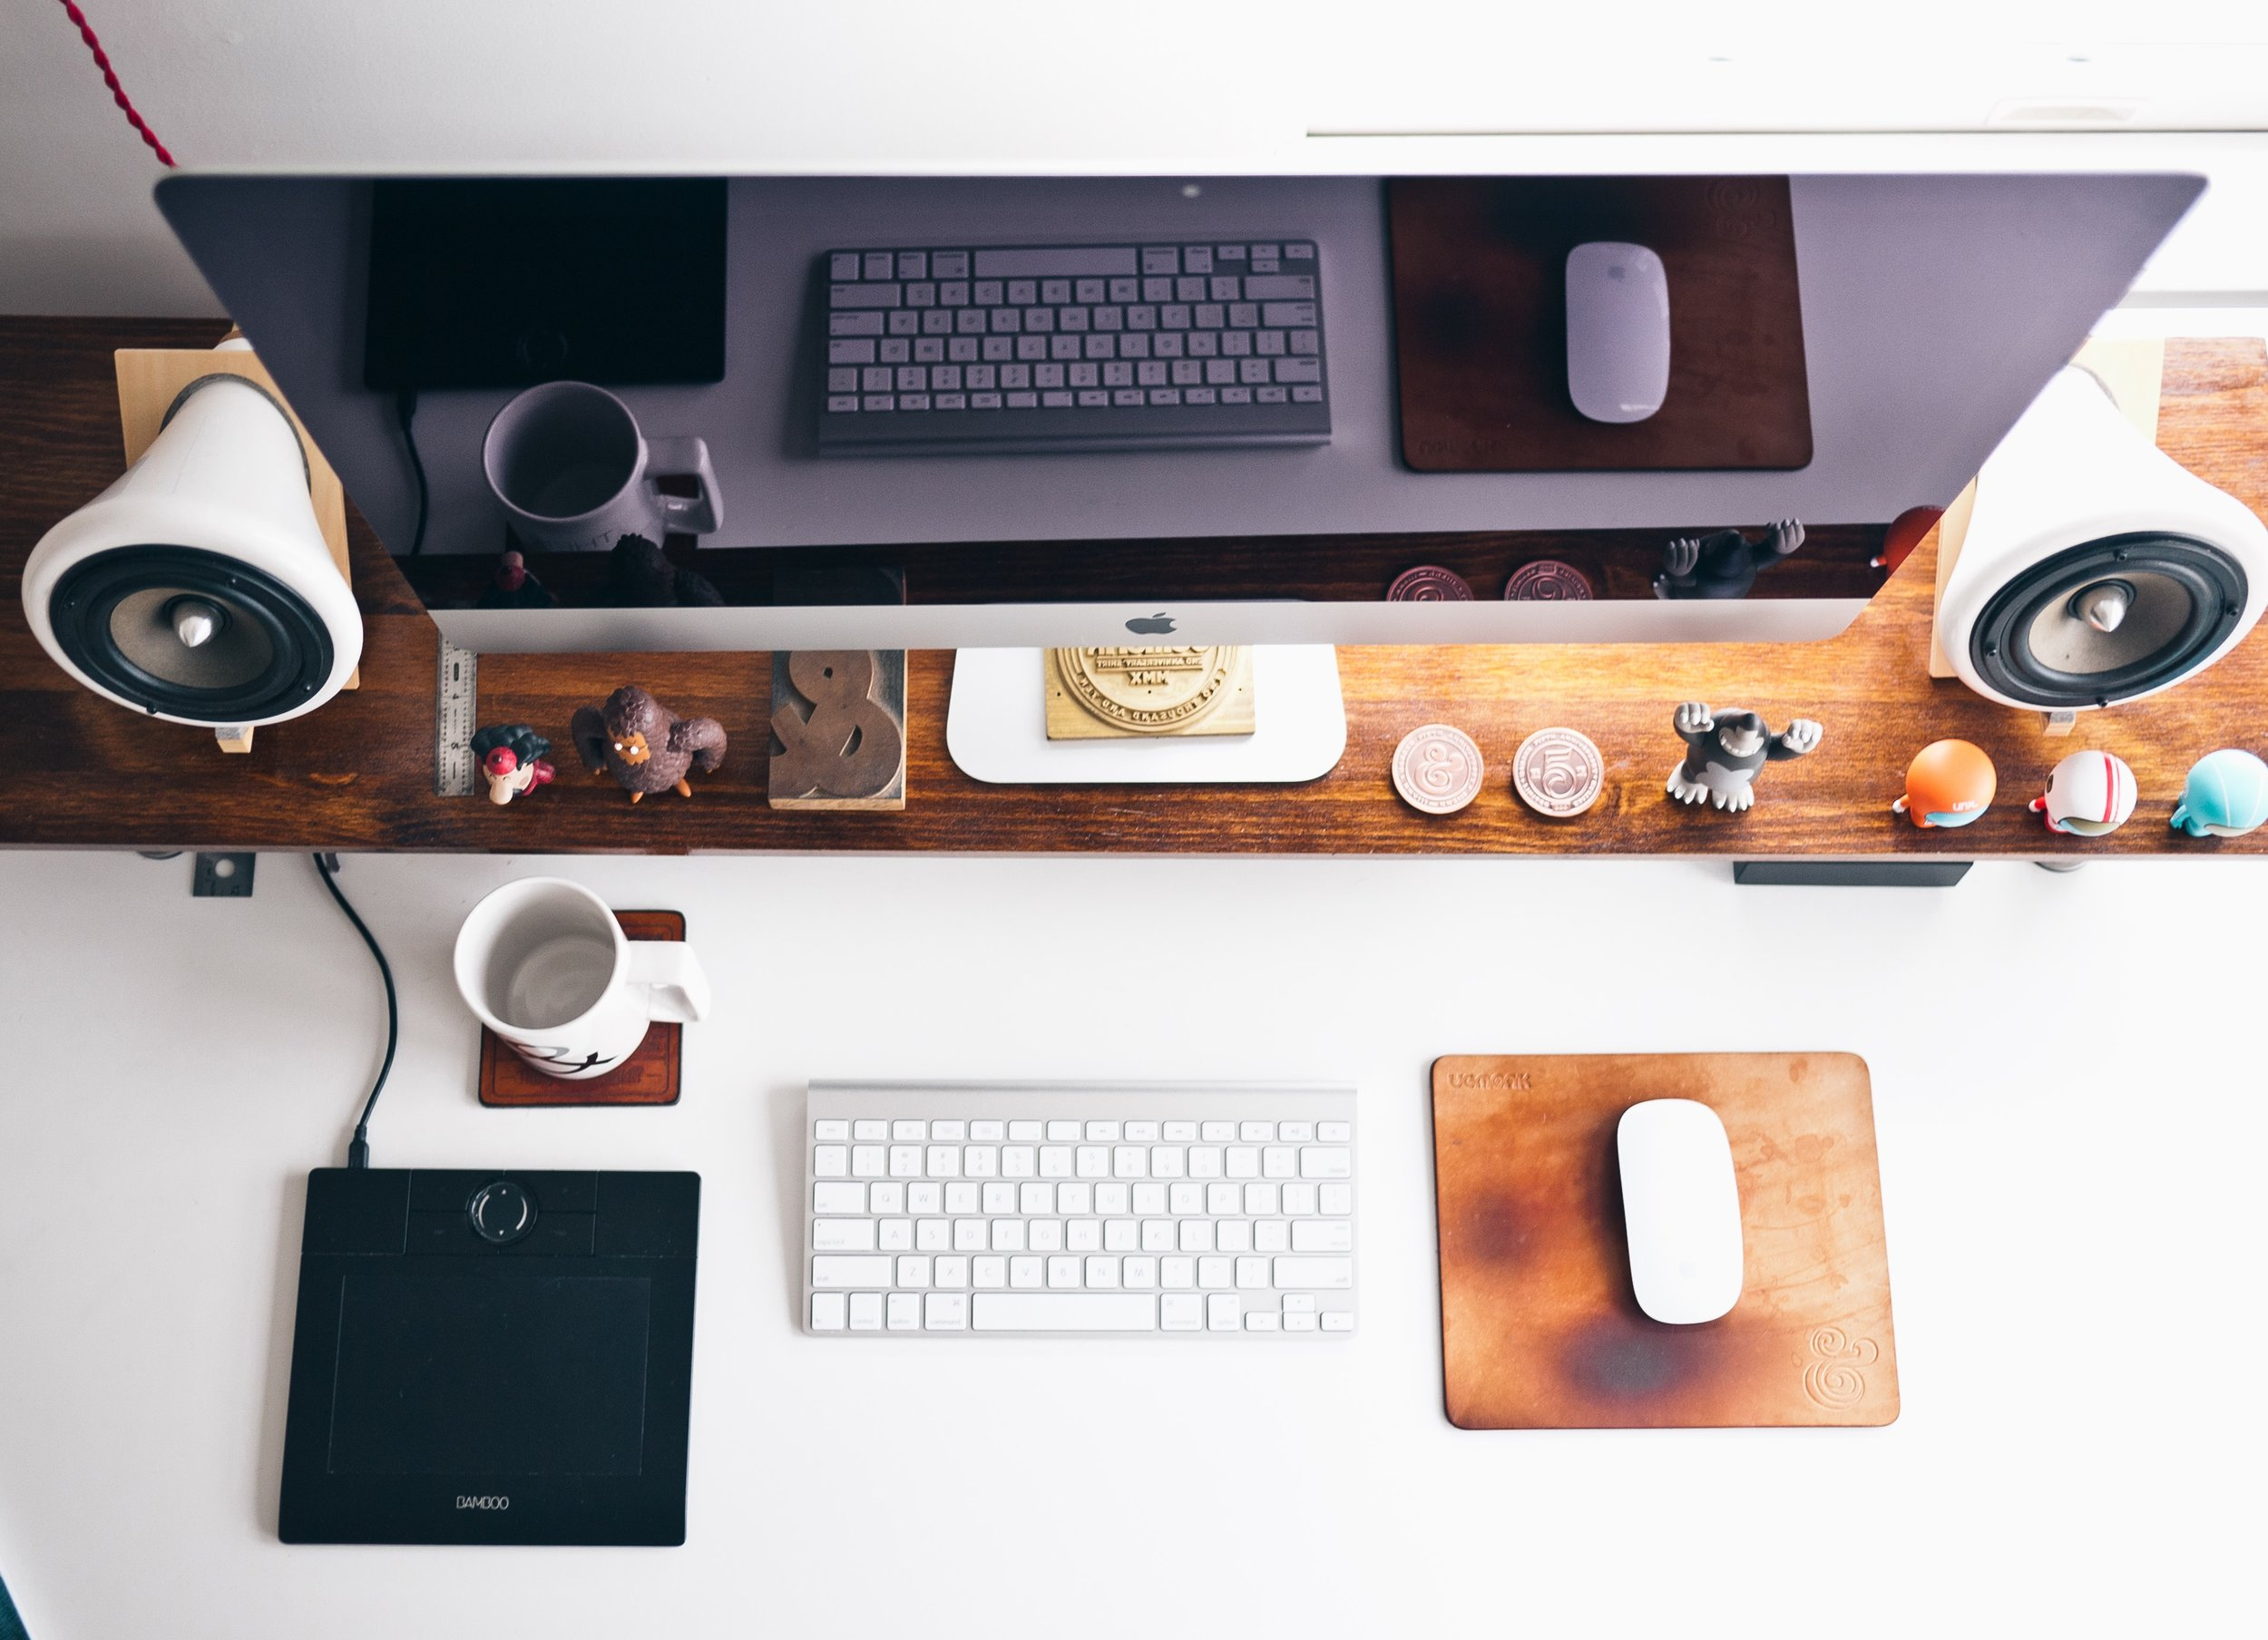 Web Design - Relax while we craft your beautiful website that aligns with your brand mission.